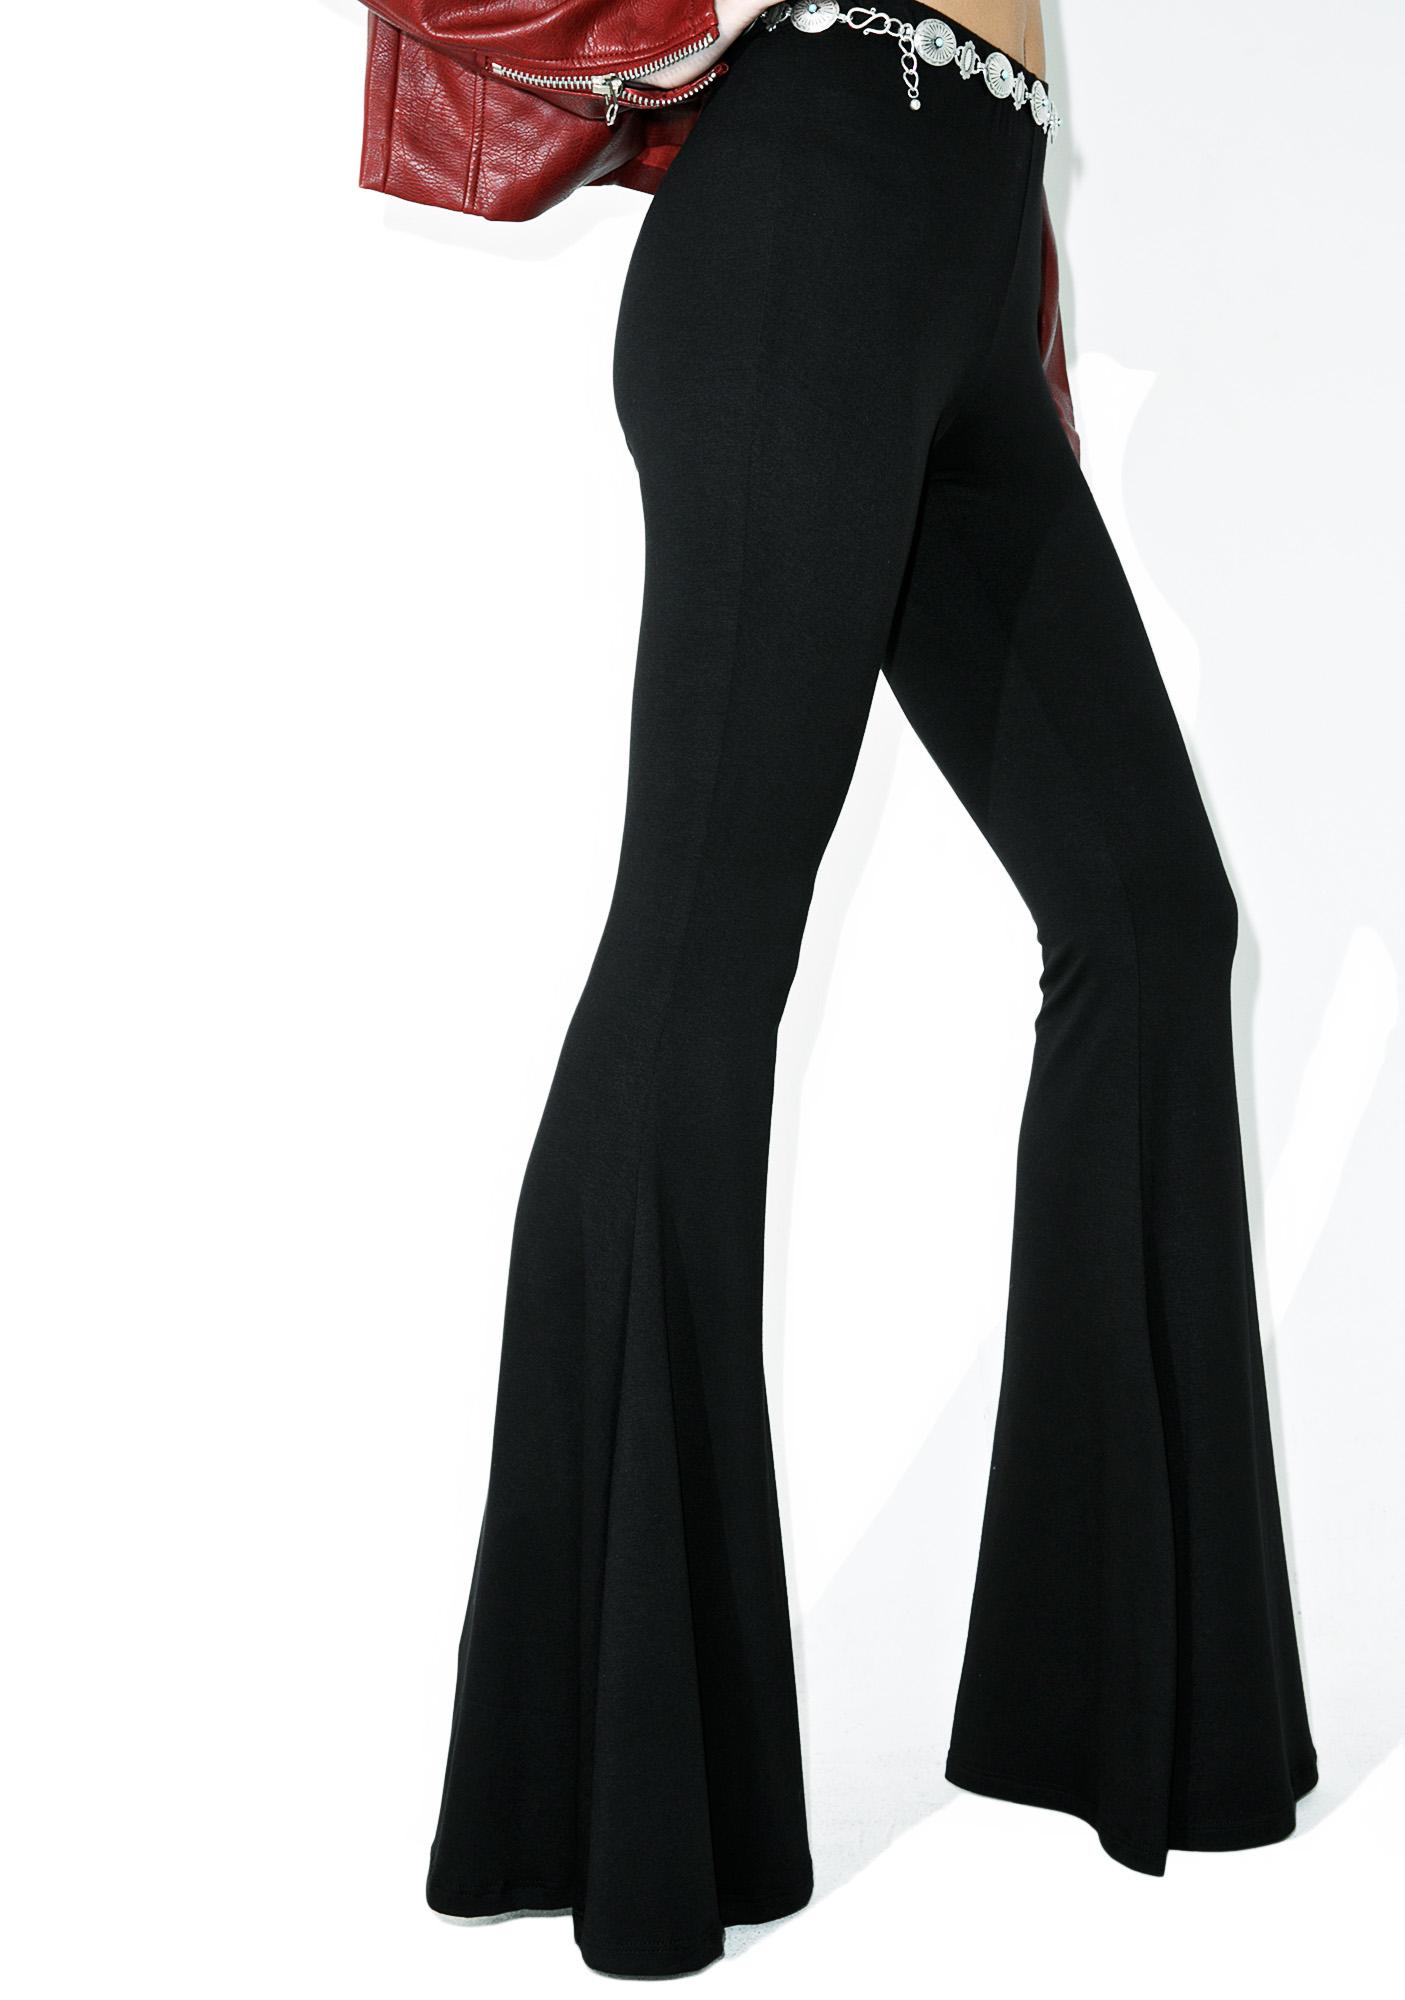 New Western Pull-On Flares